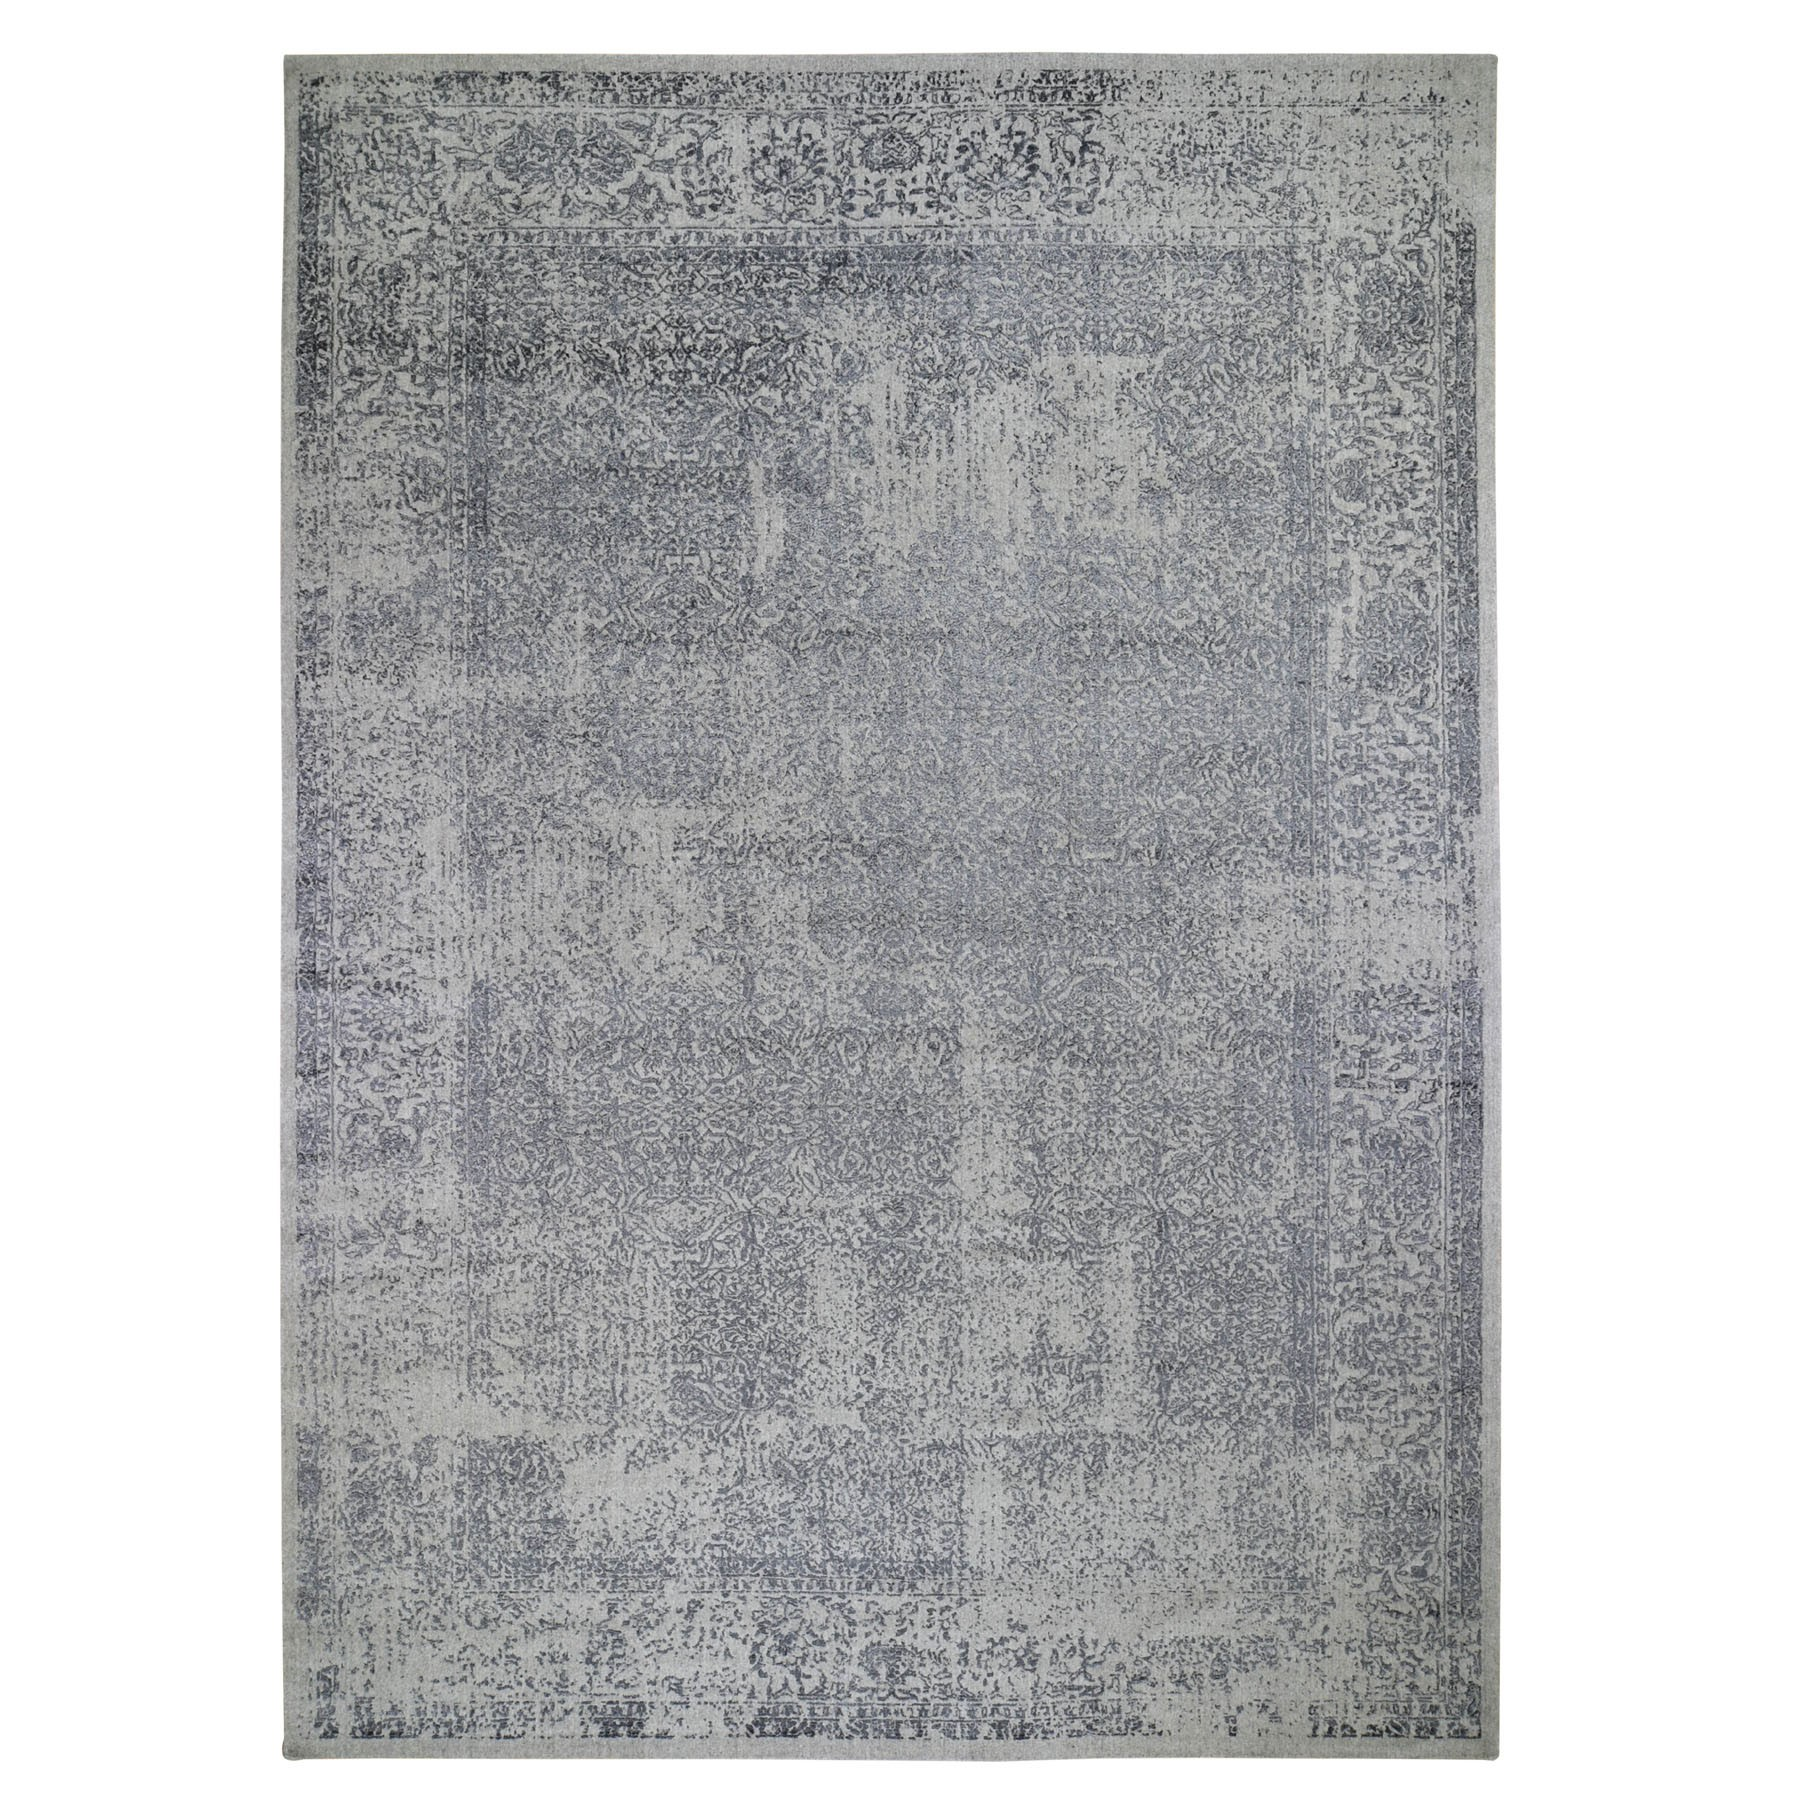 "9'10""x14' Fine jacquard Hand Loomed Erased Design Wool And Silk Oriental Rug"